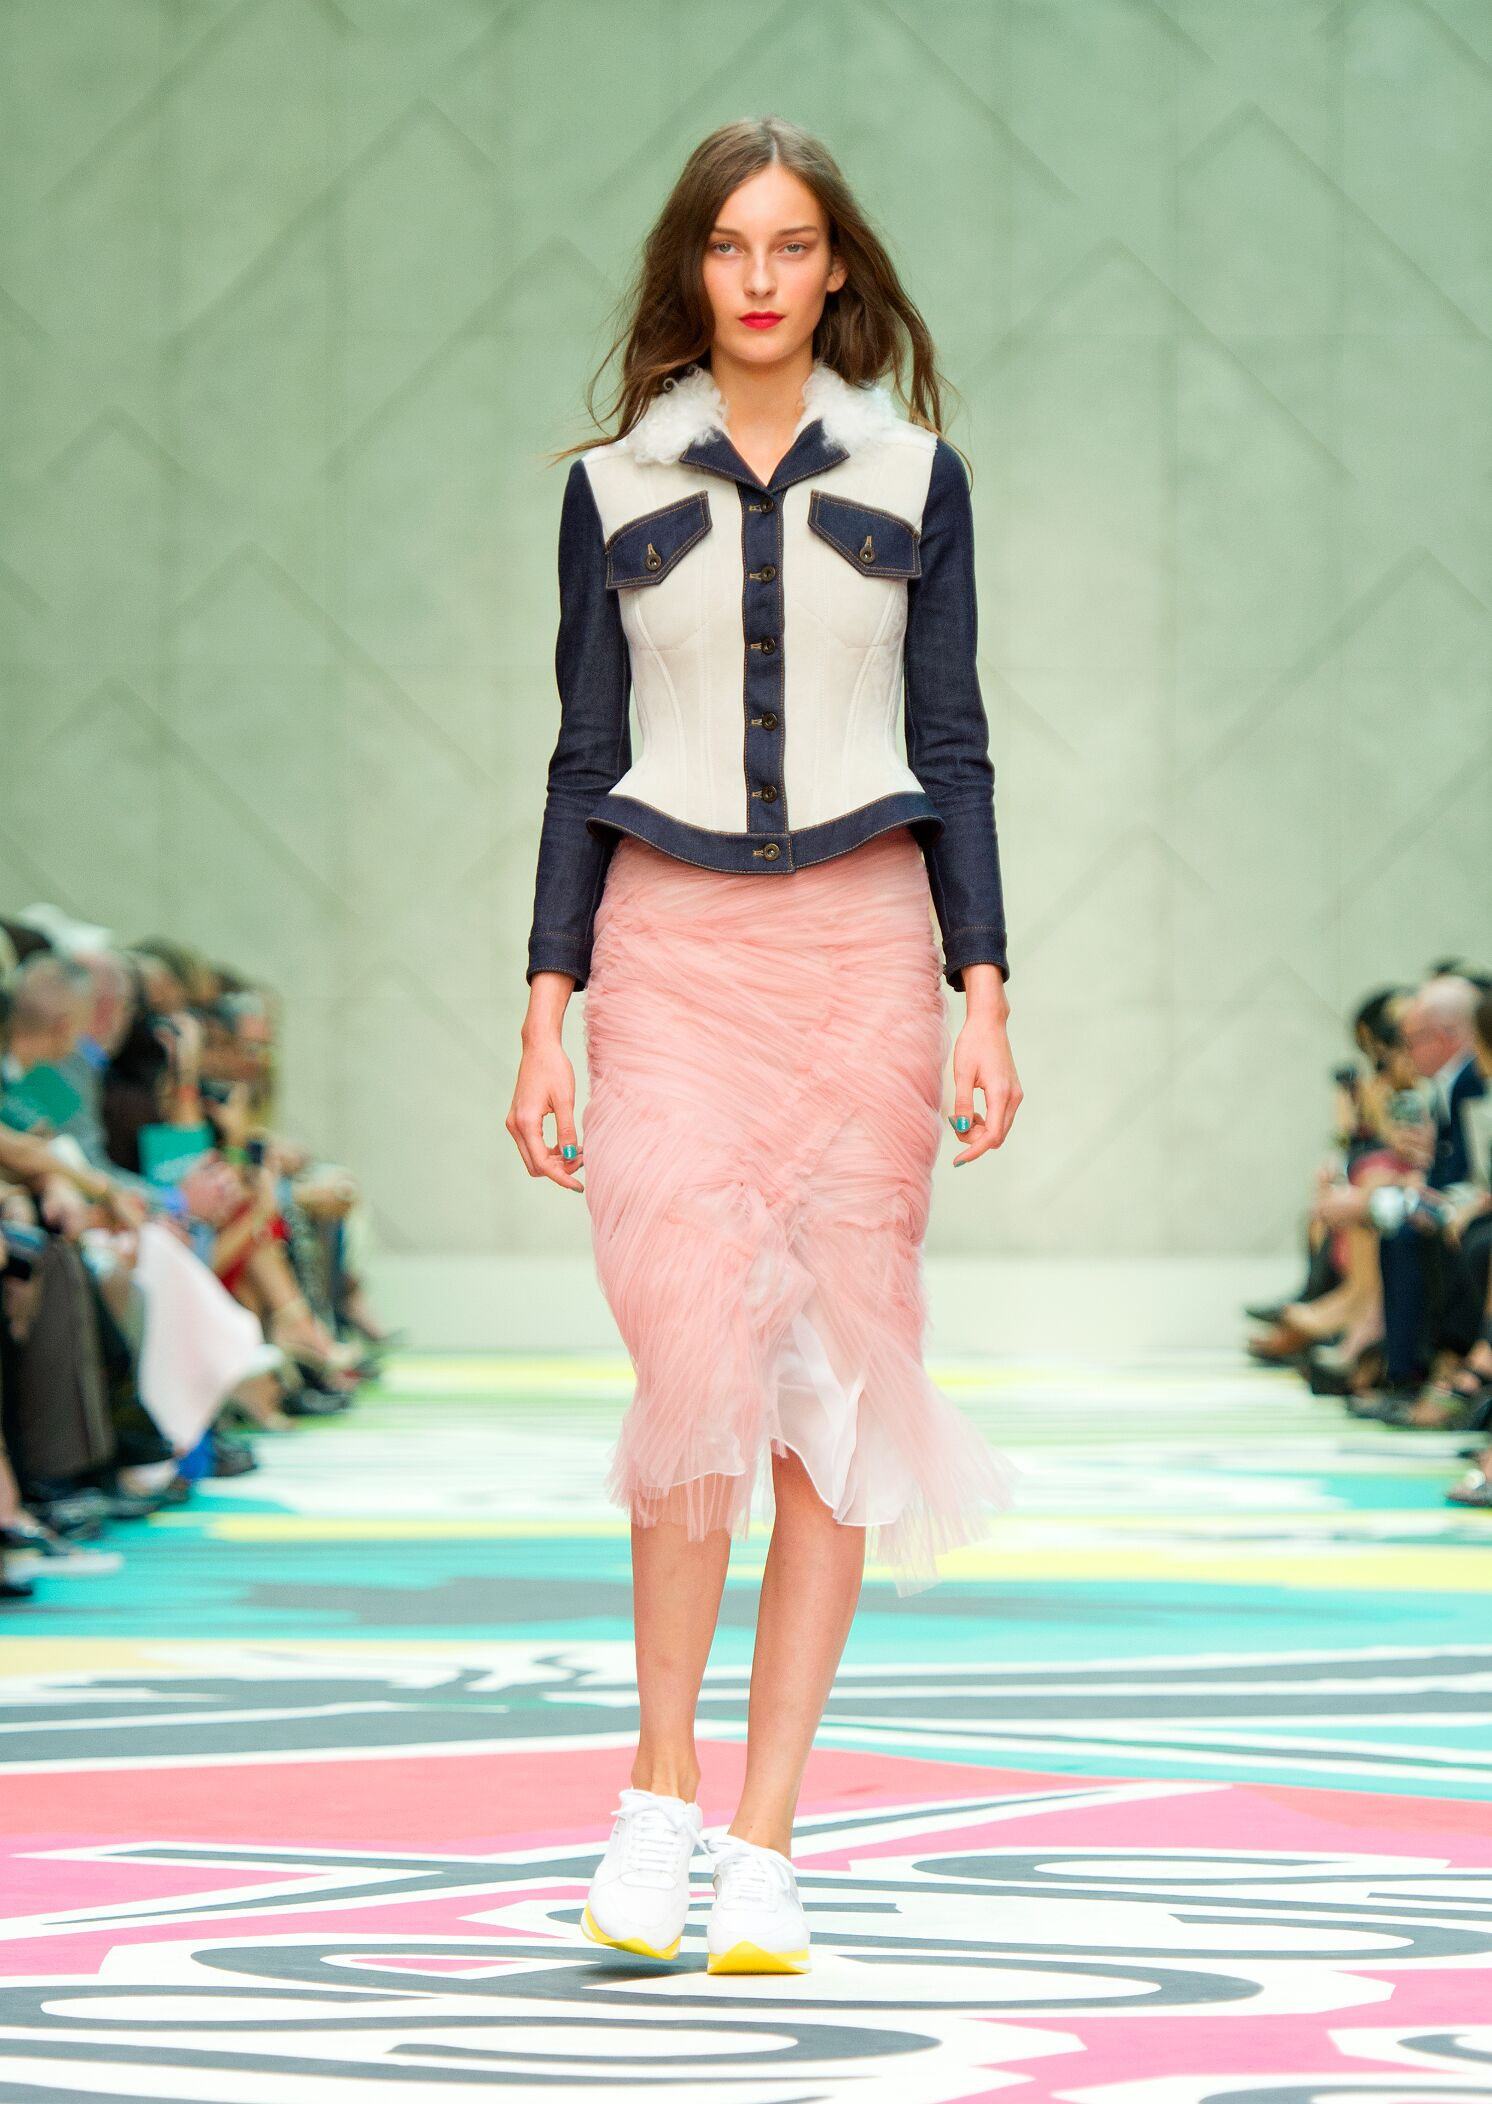 Summer Burberry Prorsum Trends 2015 Woman